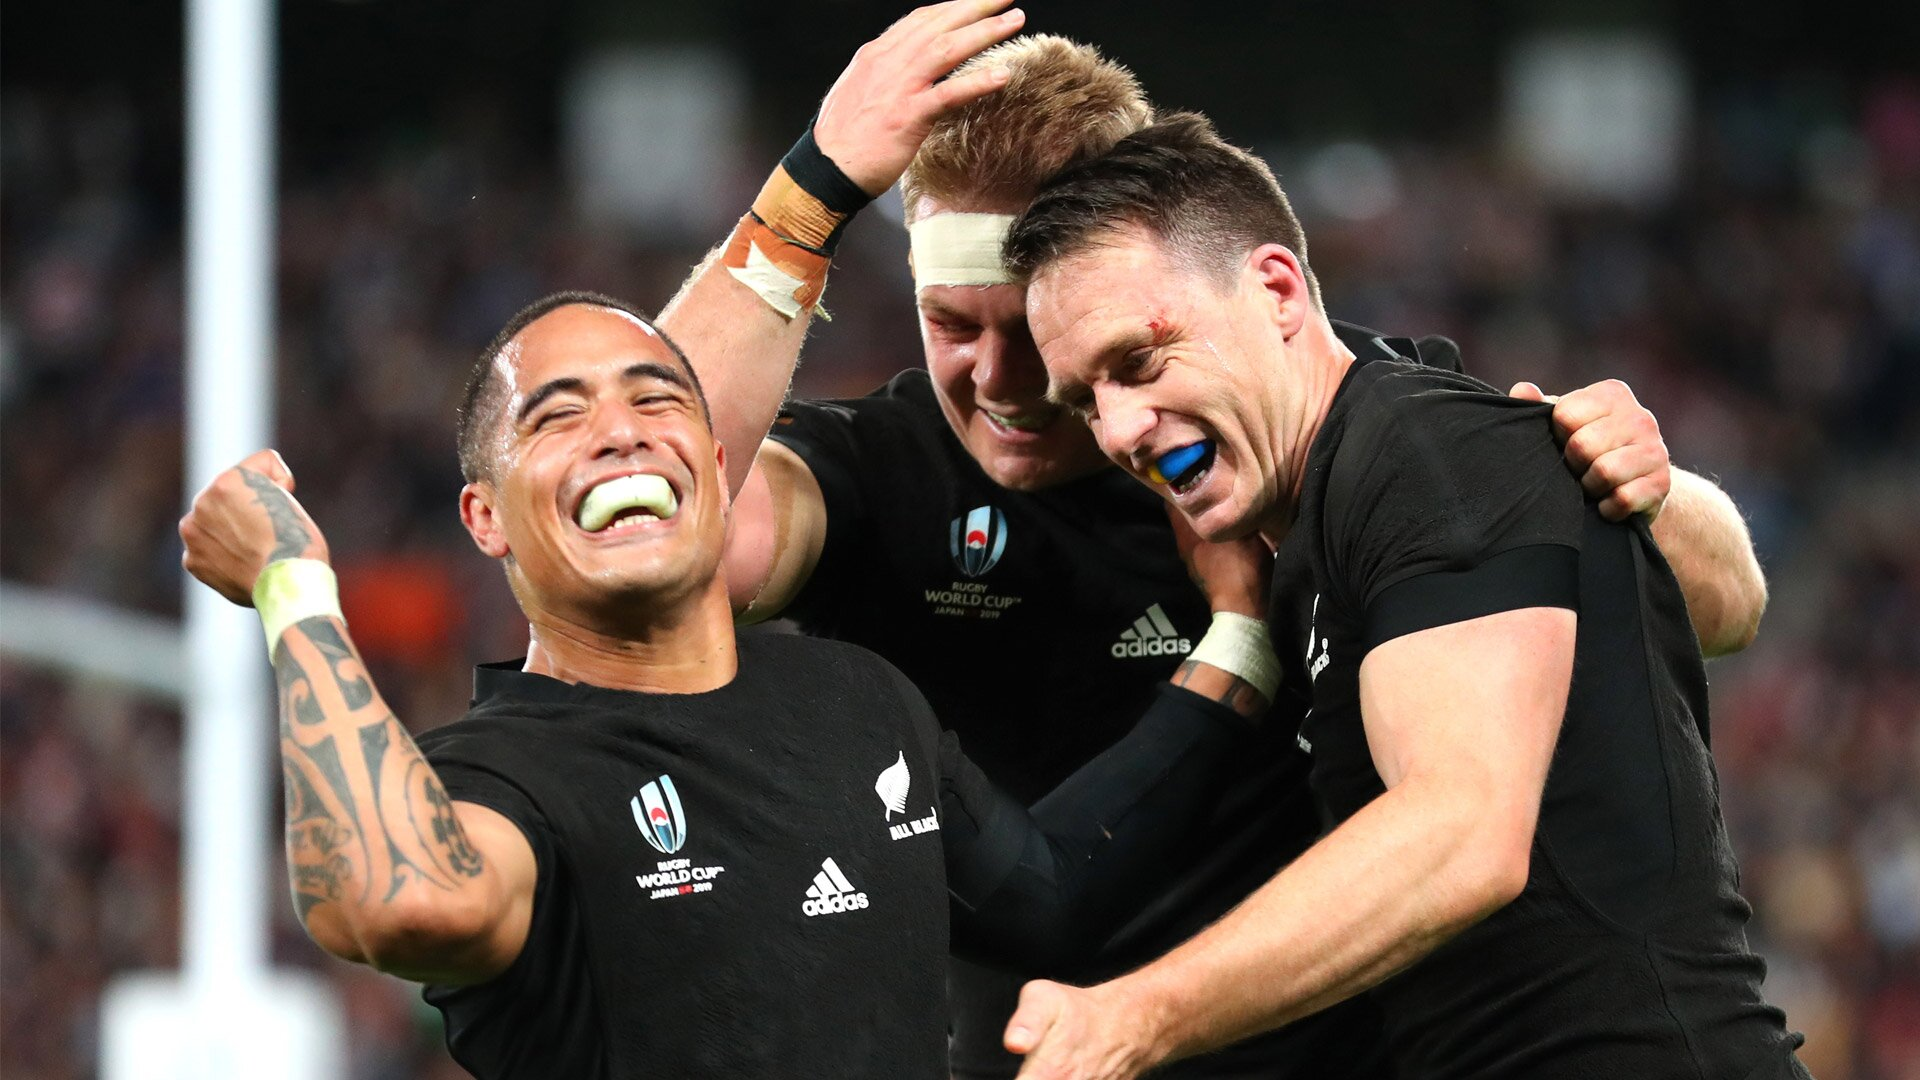 The five-year relationship finally made official that could fuel further success for the All Blacks